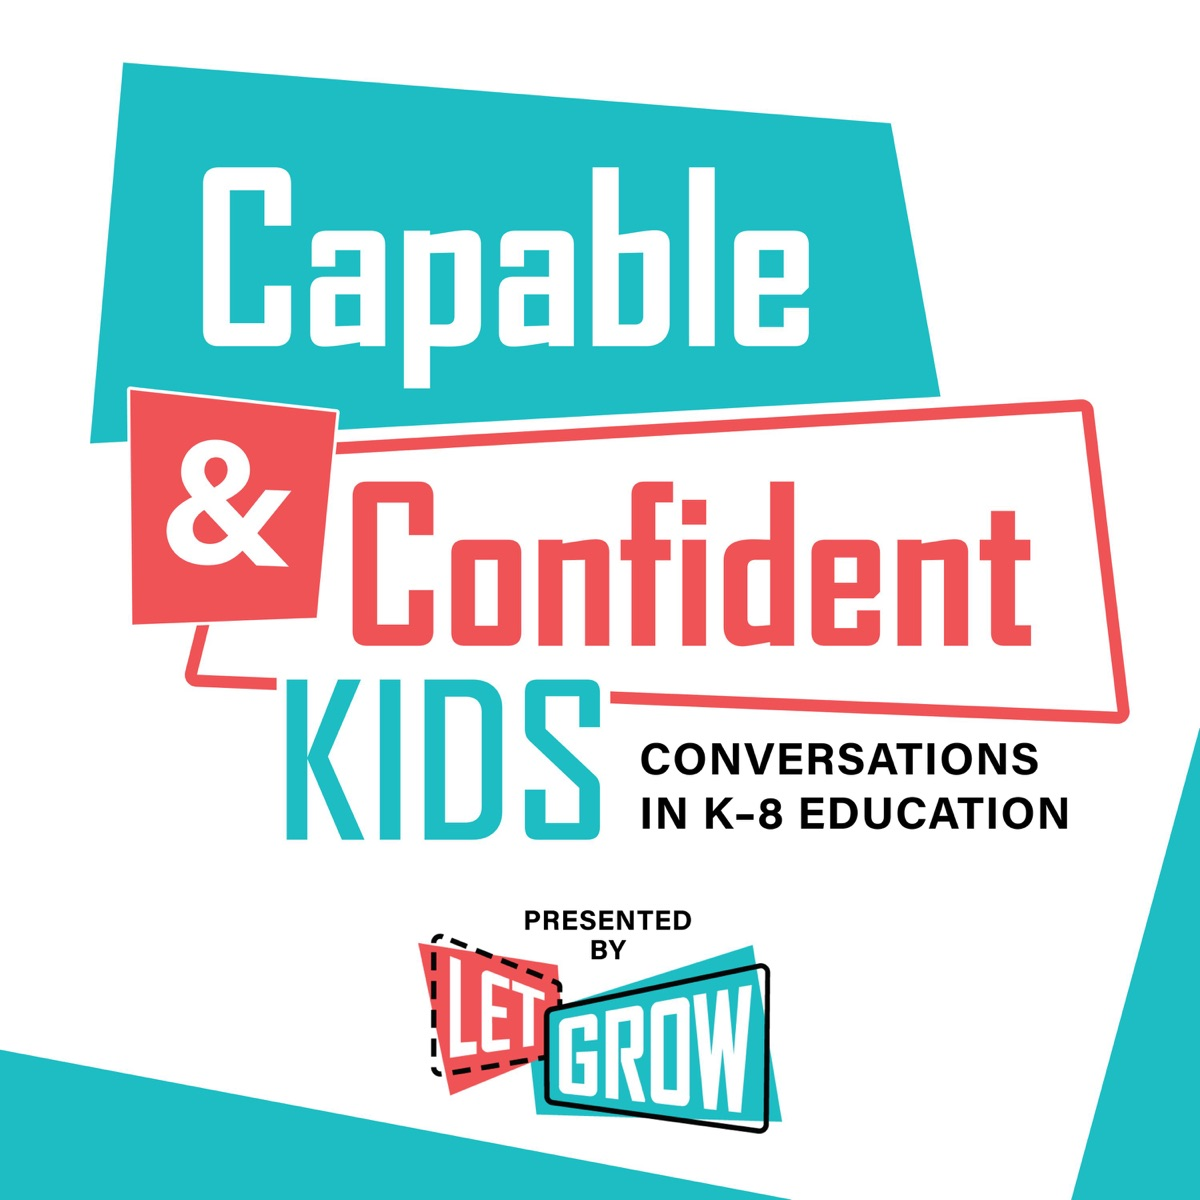 Capable & Confident Kids: Conversations in K-8 Education